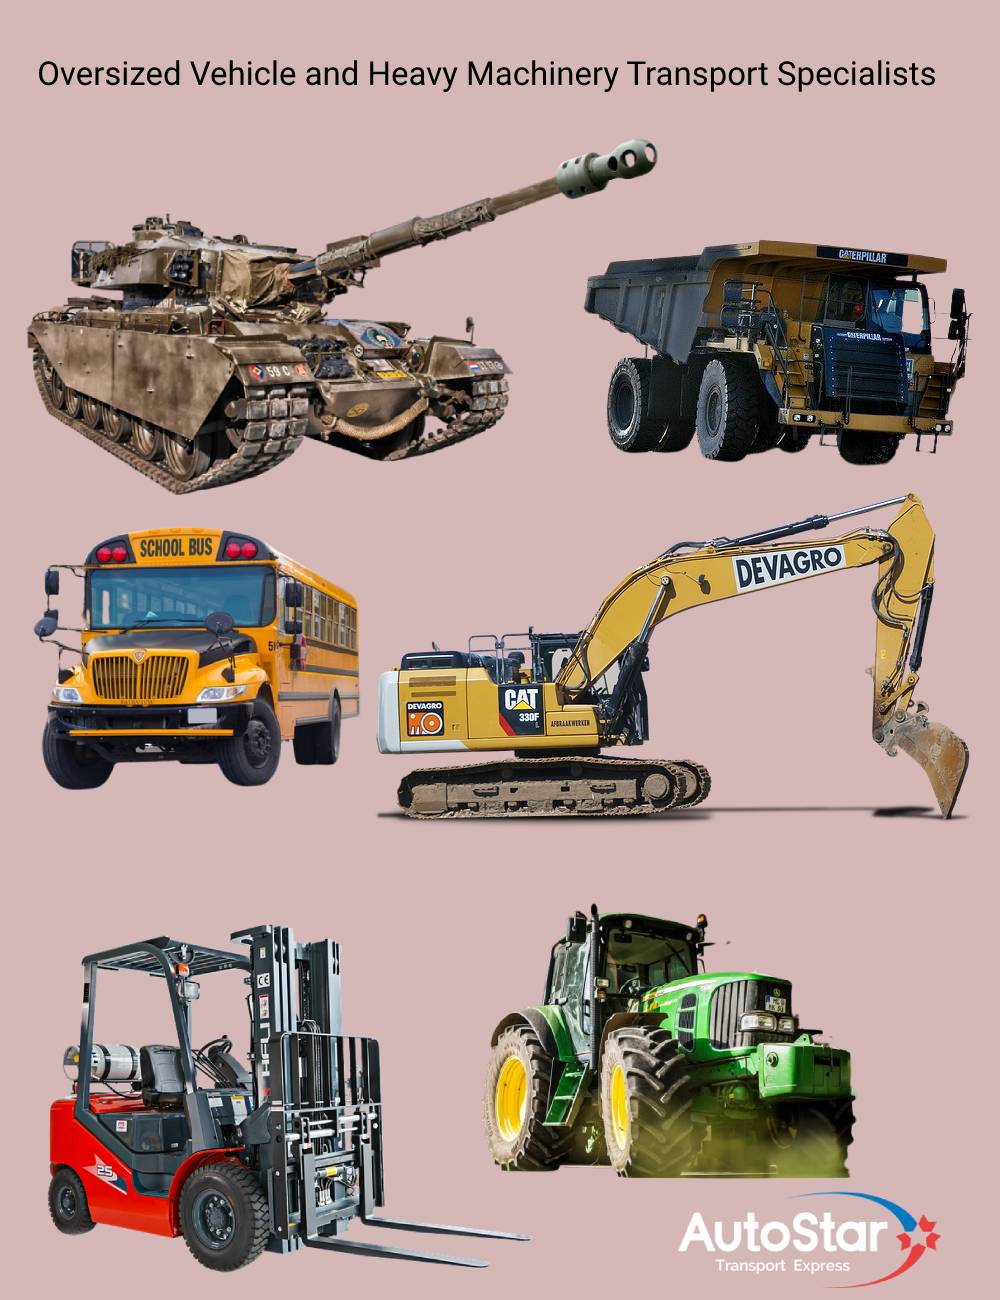 Oversized Vehicle and heavy machinery shipping experts